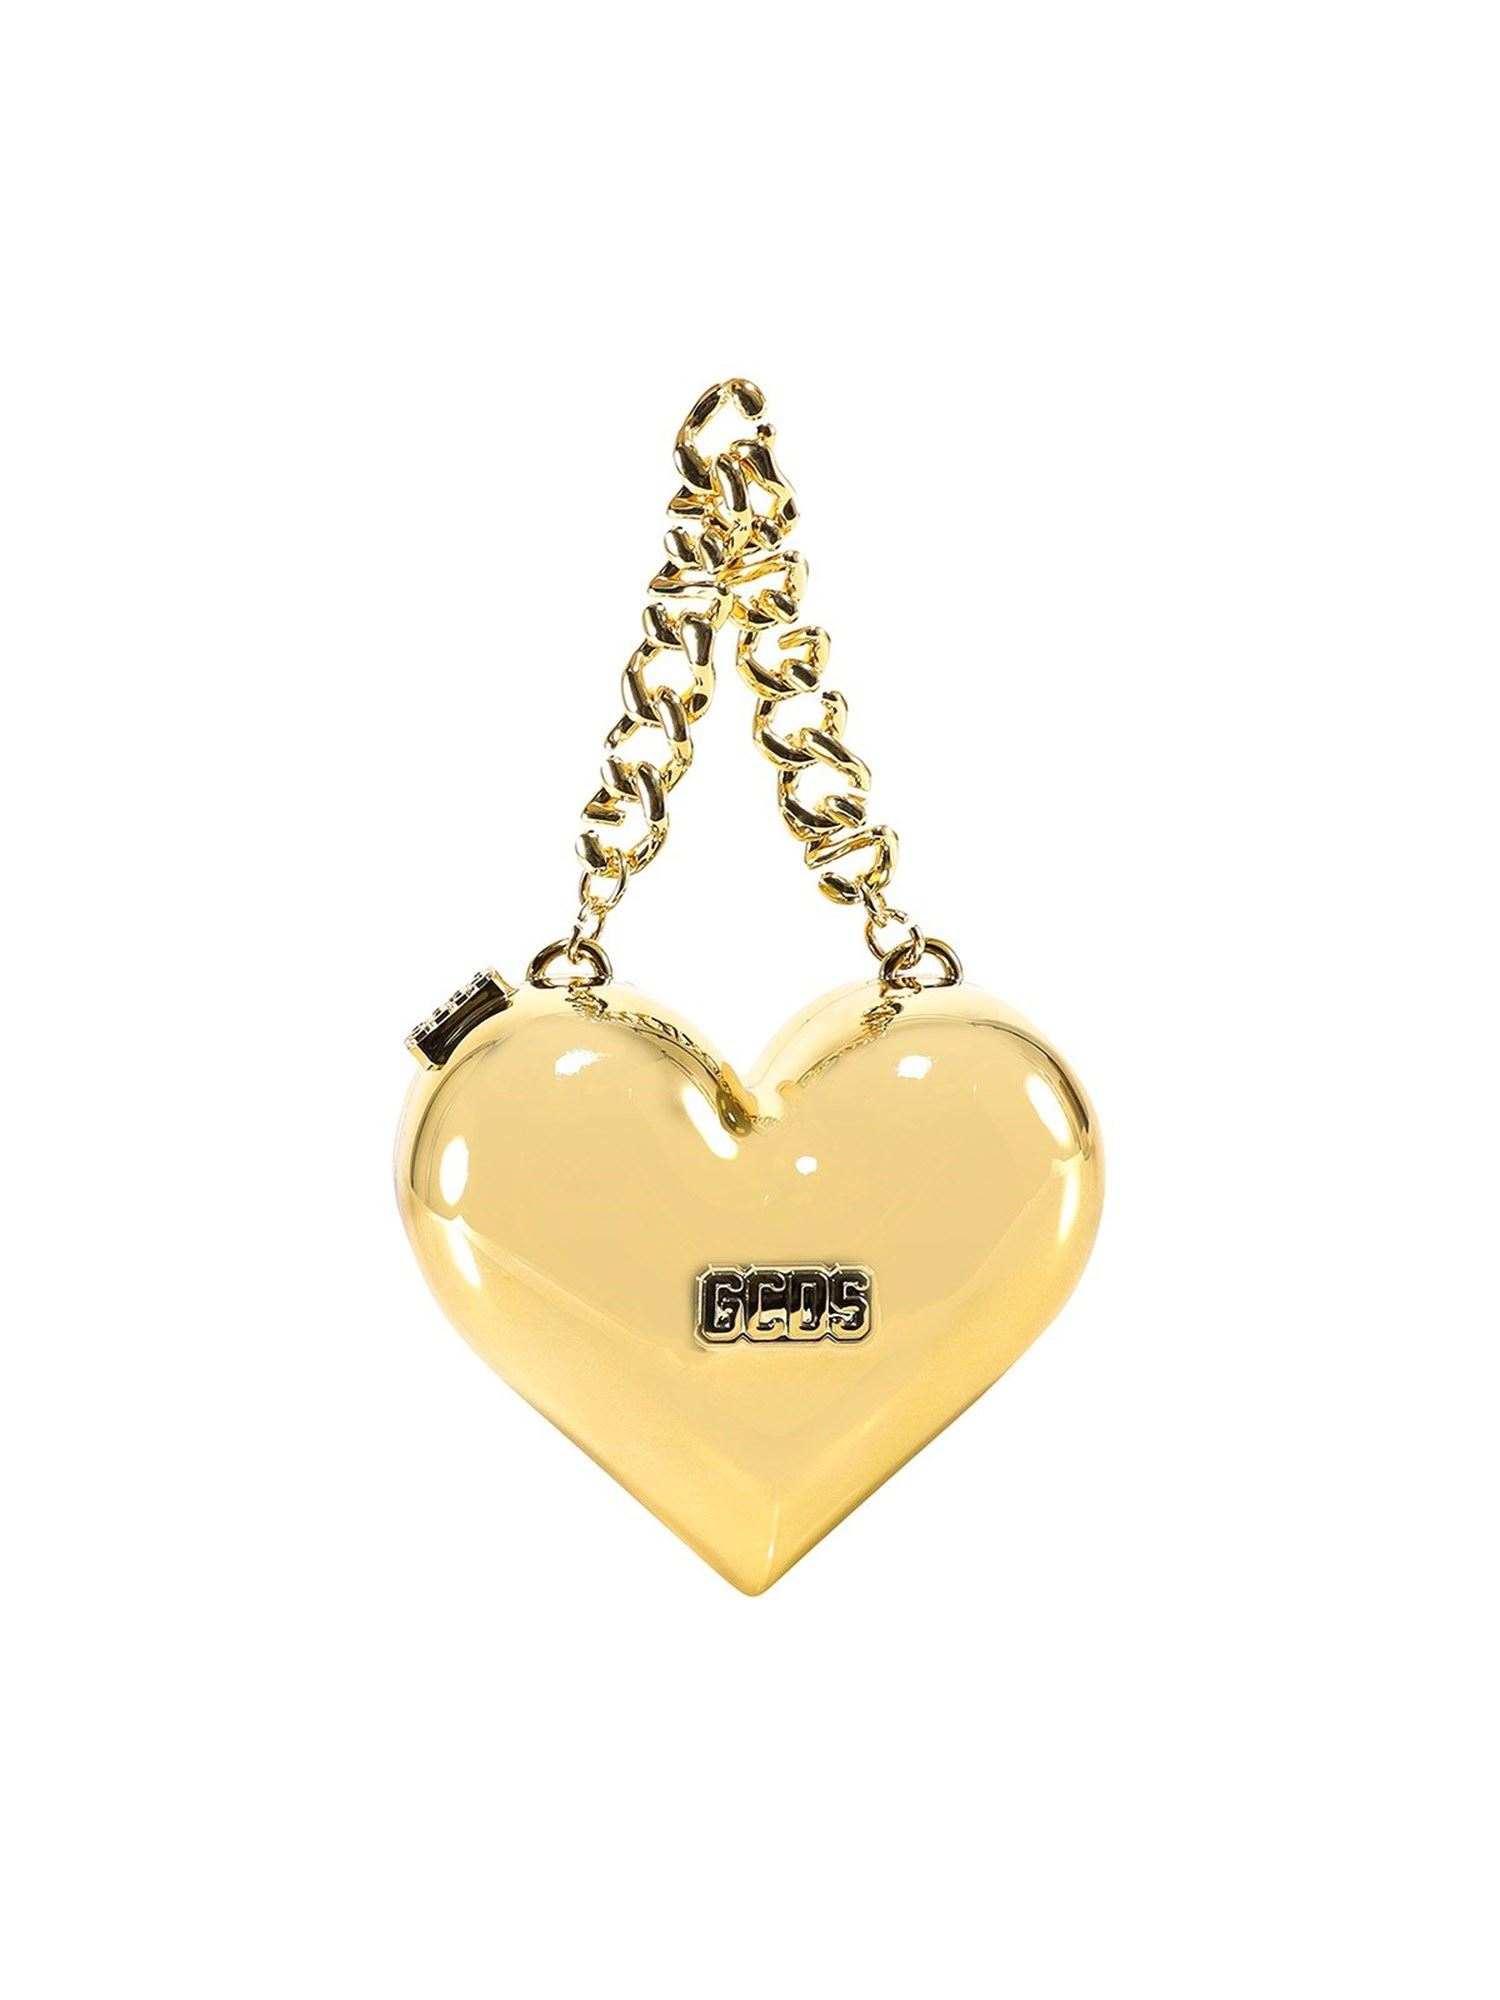 Gcds HEART-SHAPED CLUTCH IN GOLD COLOR